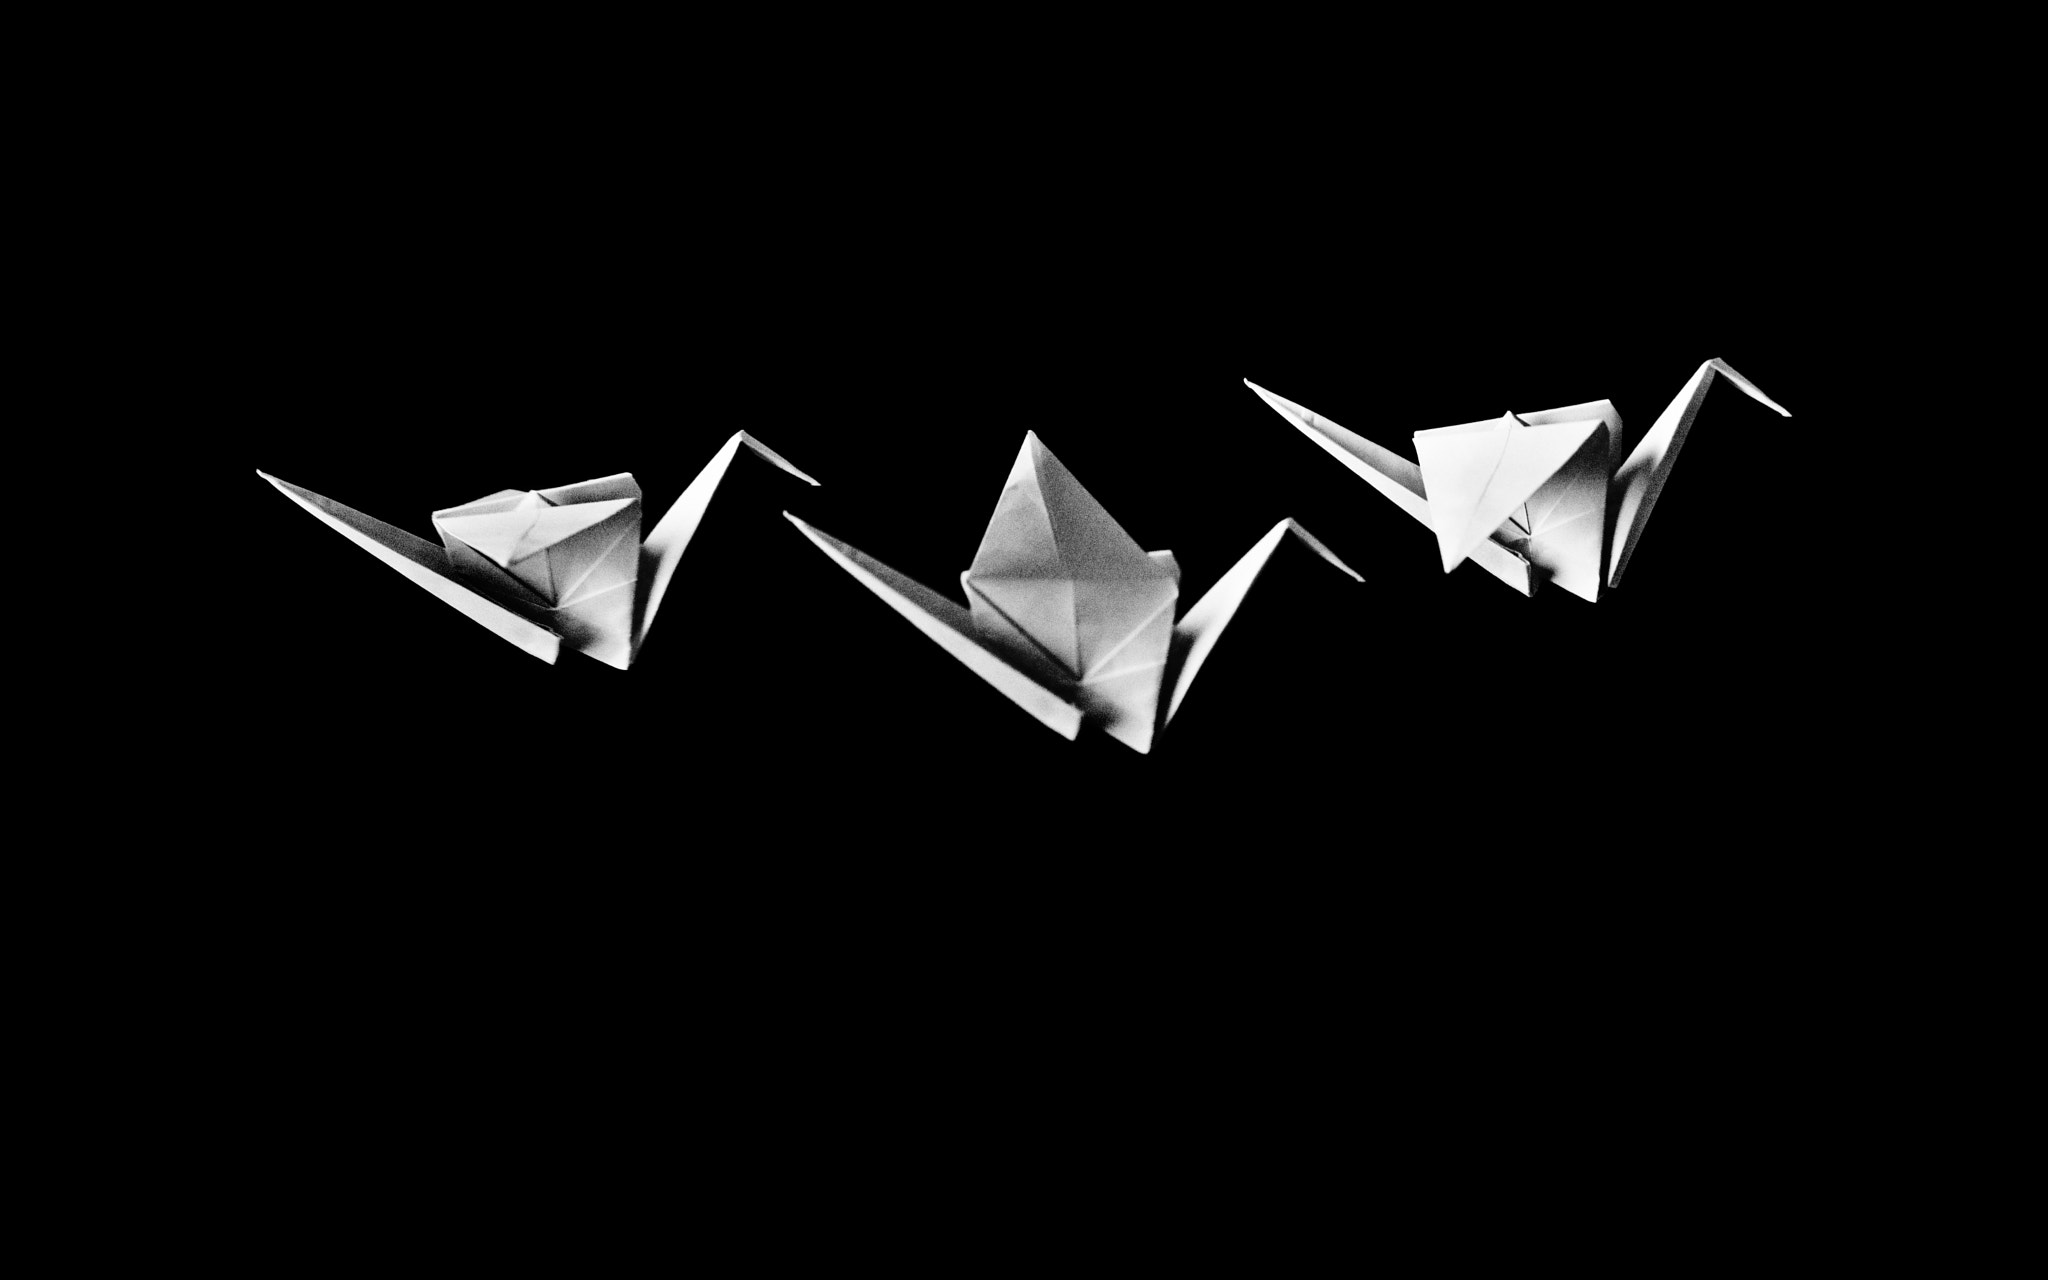 Photograph flight of the origami. by Josh Sam on 500px